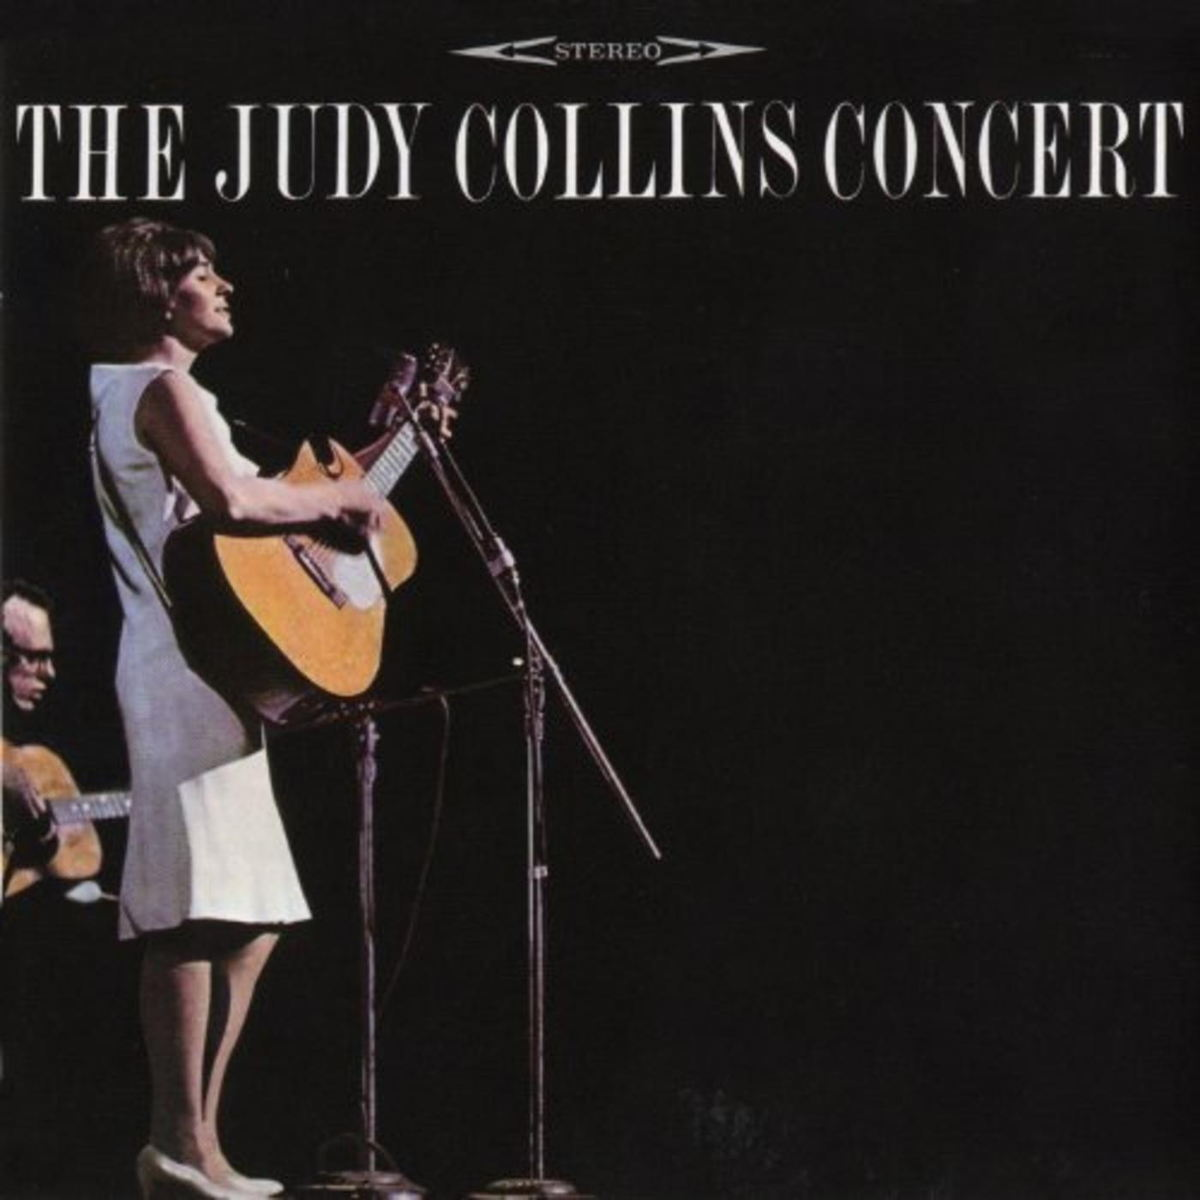 The Judy Collins Concert (1964)